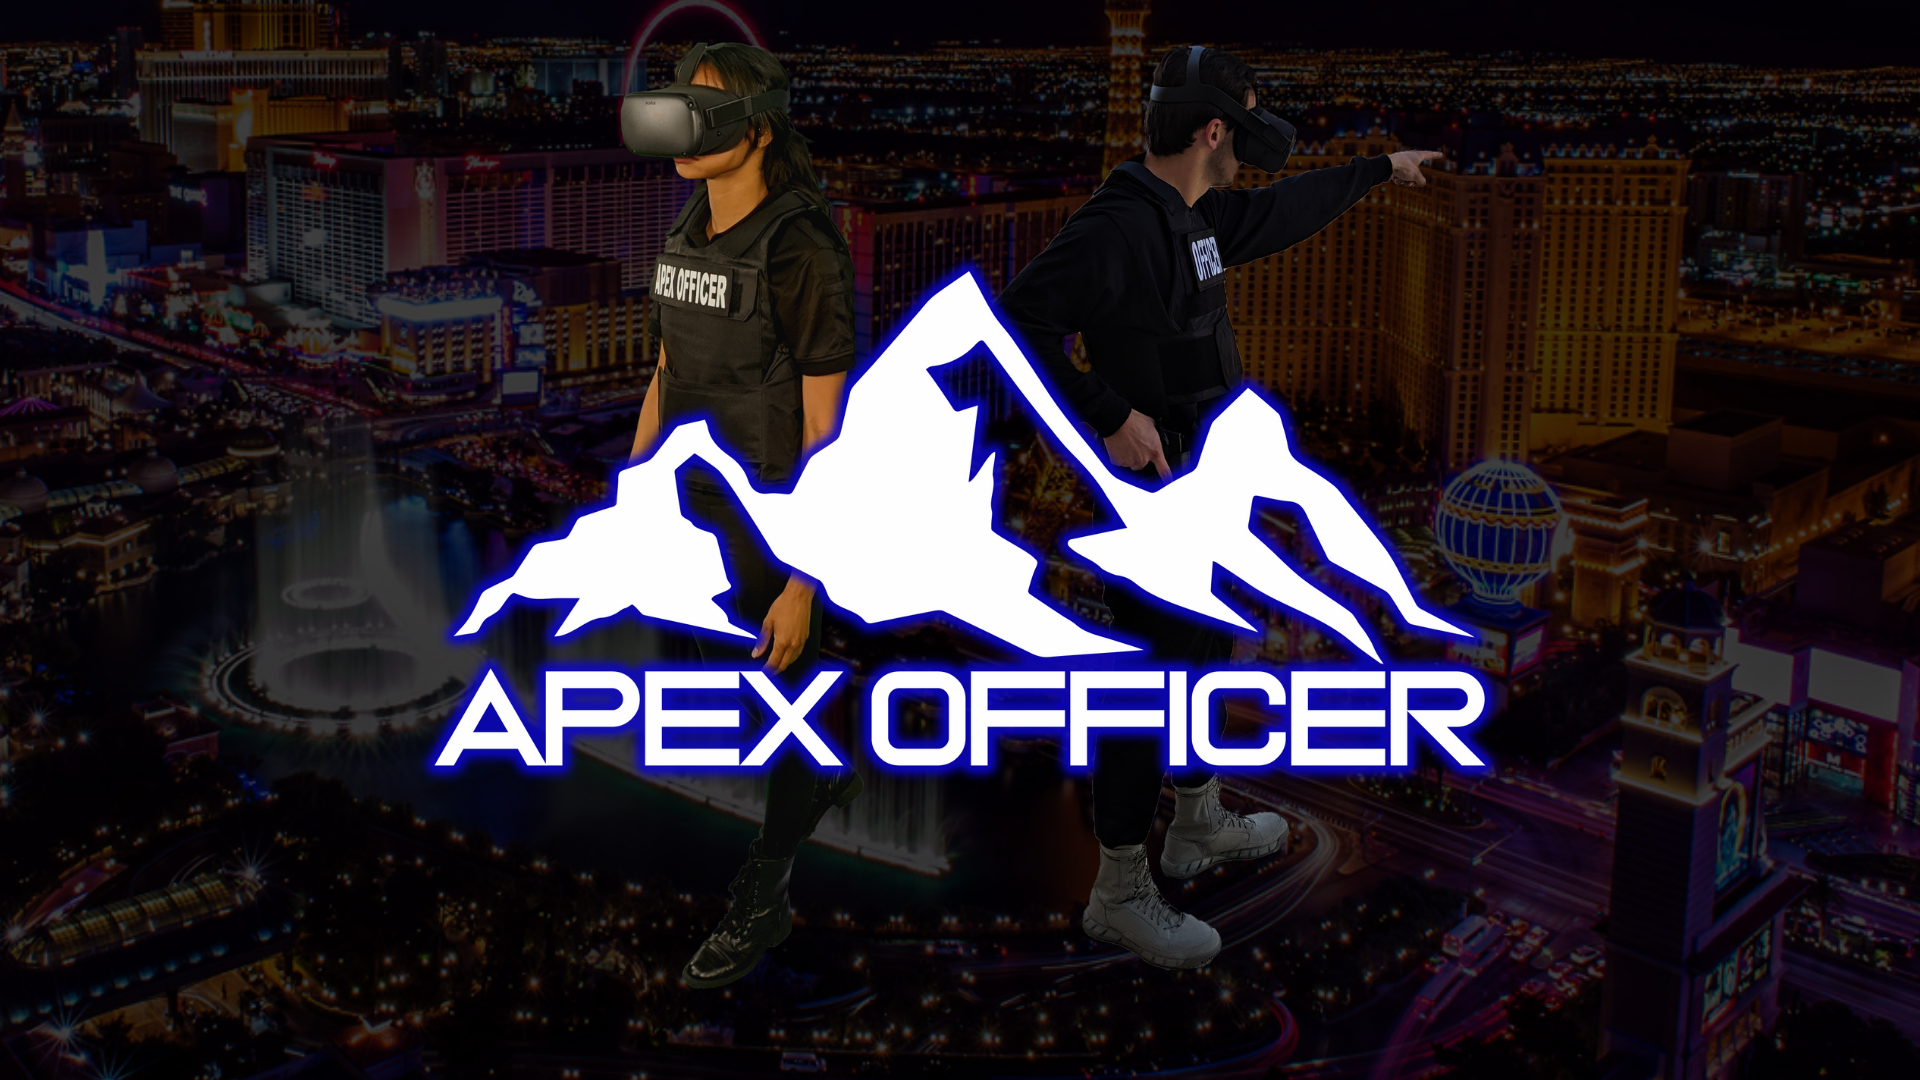 Apex Officer is the leading provider of virtual reality training simulators for police departments and law enforcement agencies.